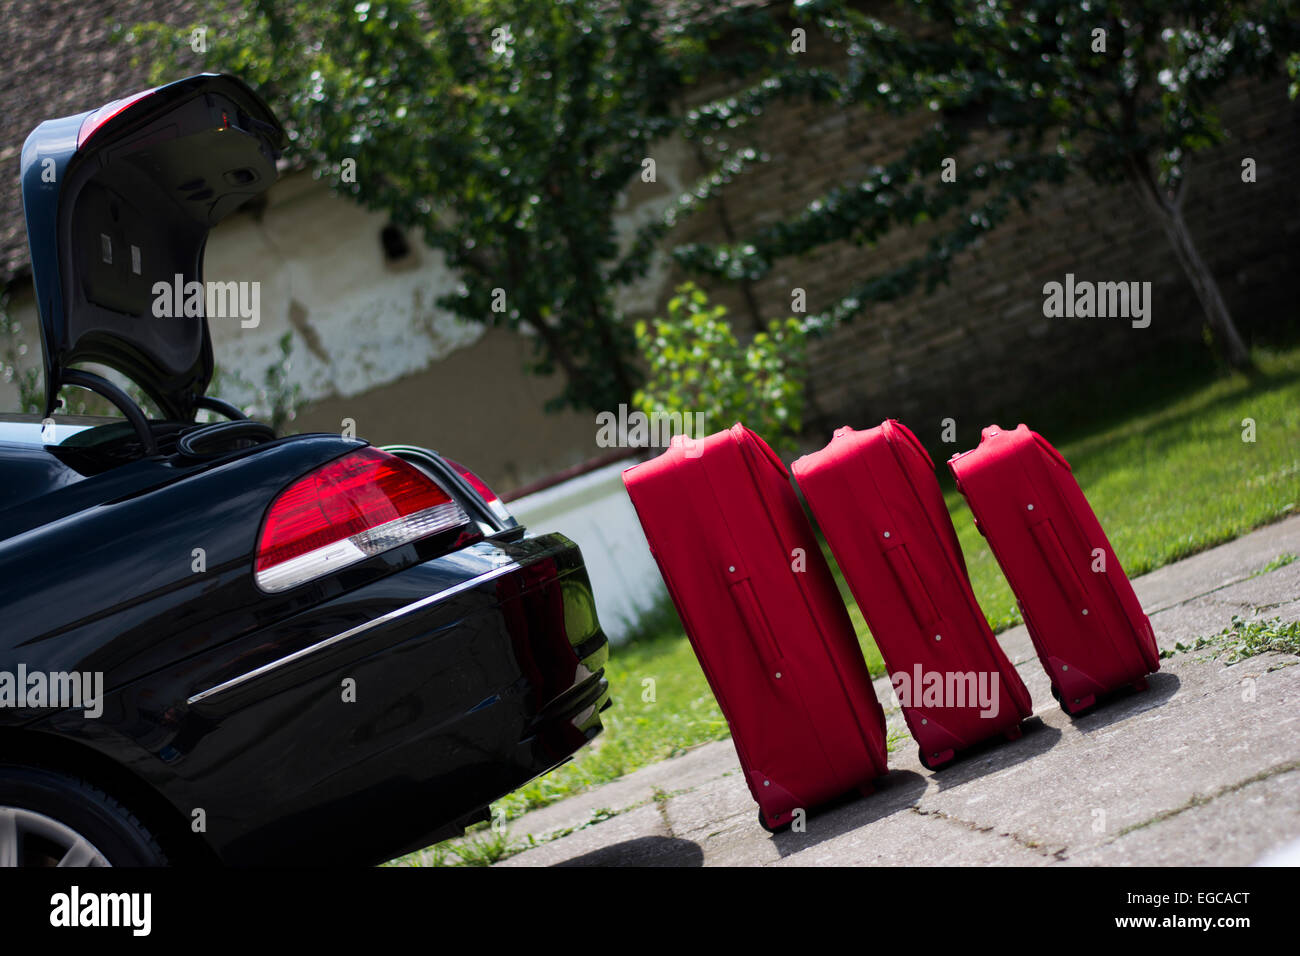 Red suitcases waiting to be packed and ready for travel - Stock Image